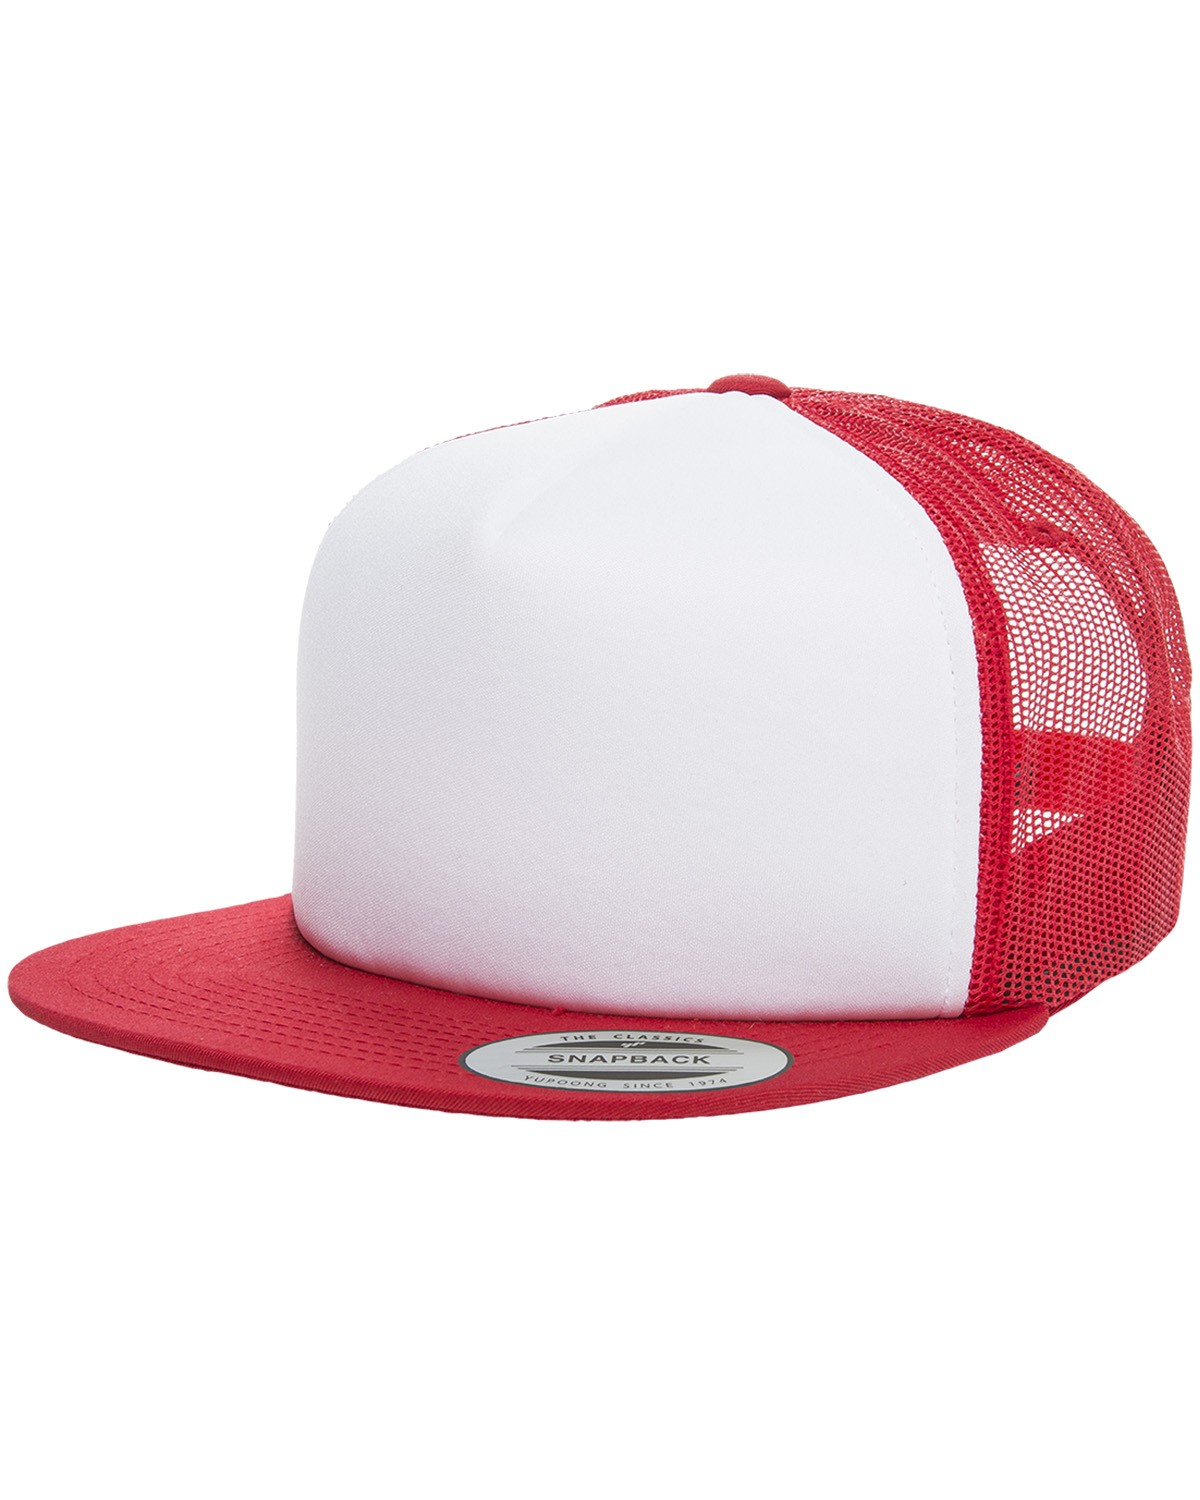 6005FW Yupoong RED/WHITE/RED